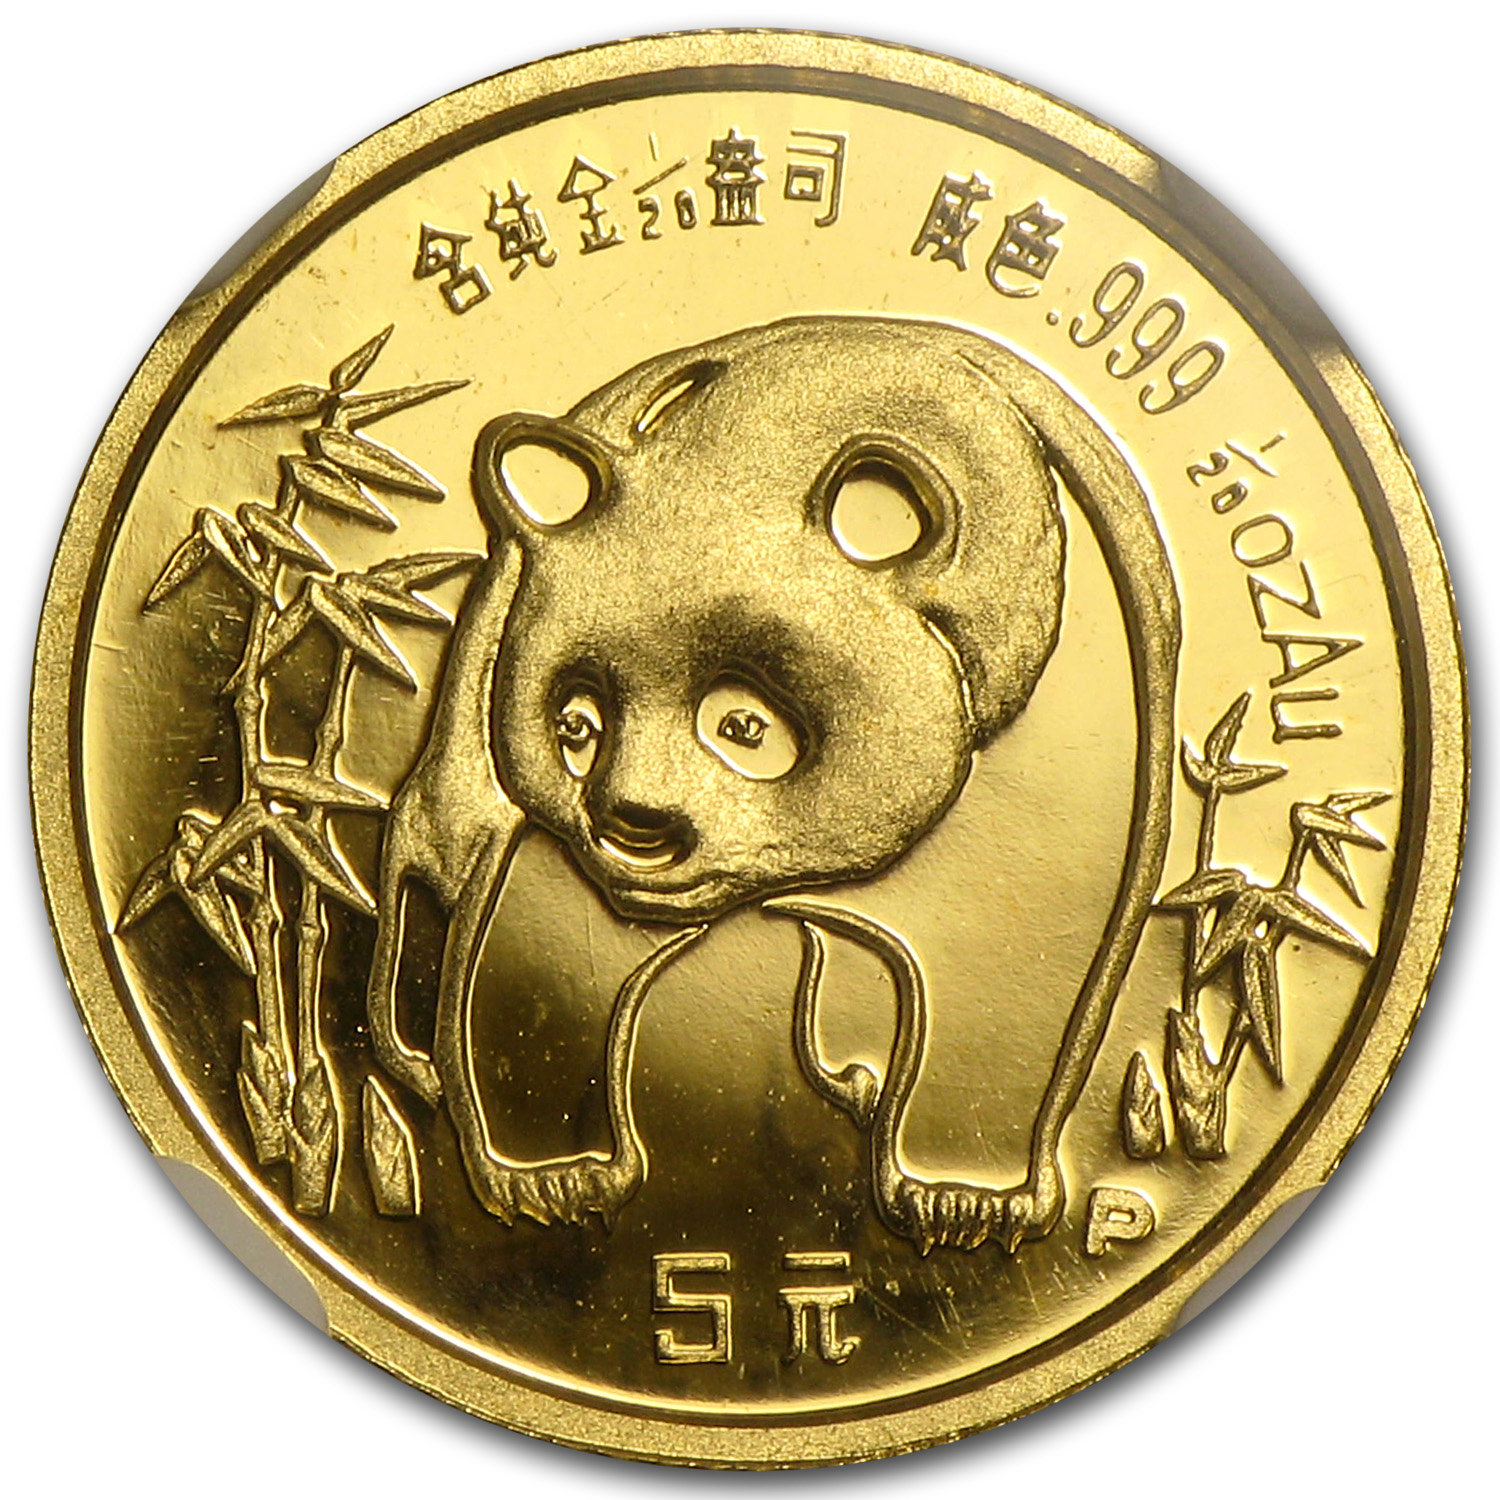 1986 (1/20 oz Proof) Gold Chinese Pandas - PF-68 UCAM NGC